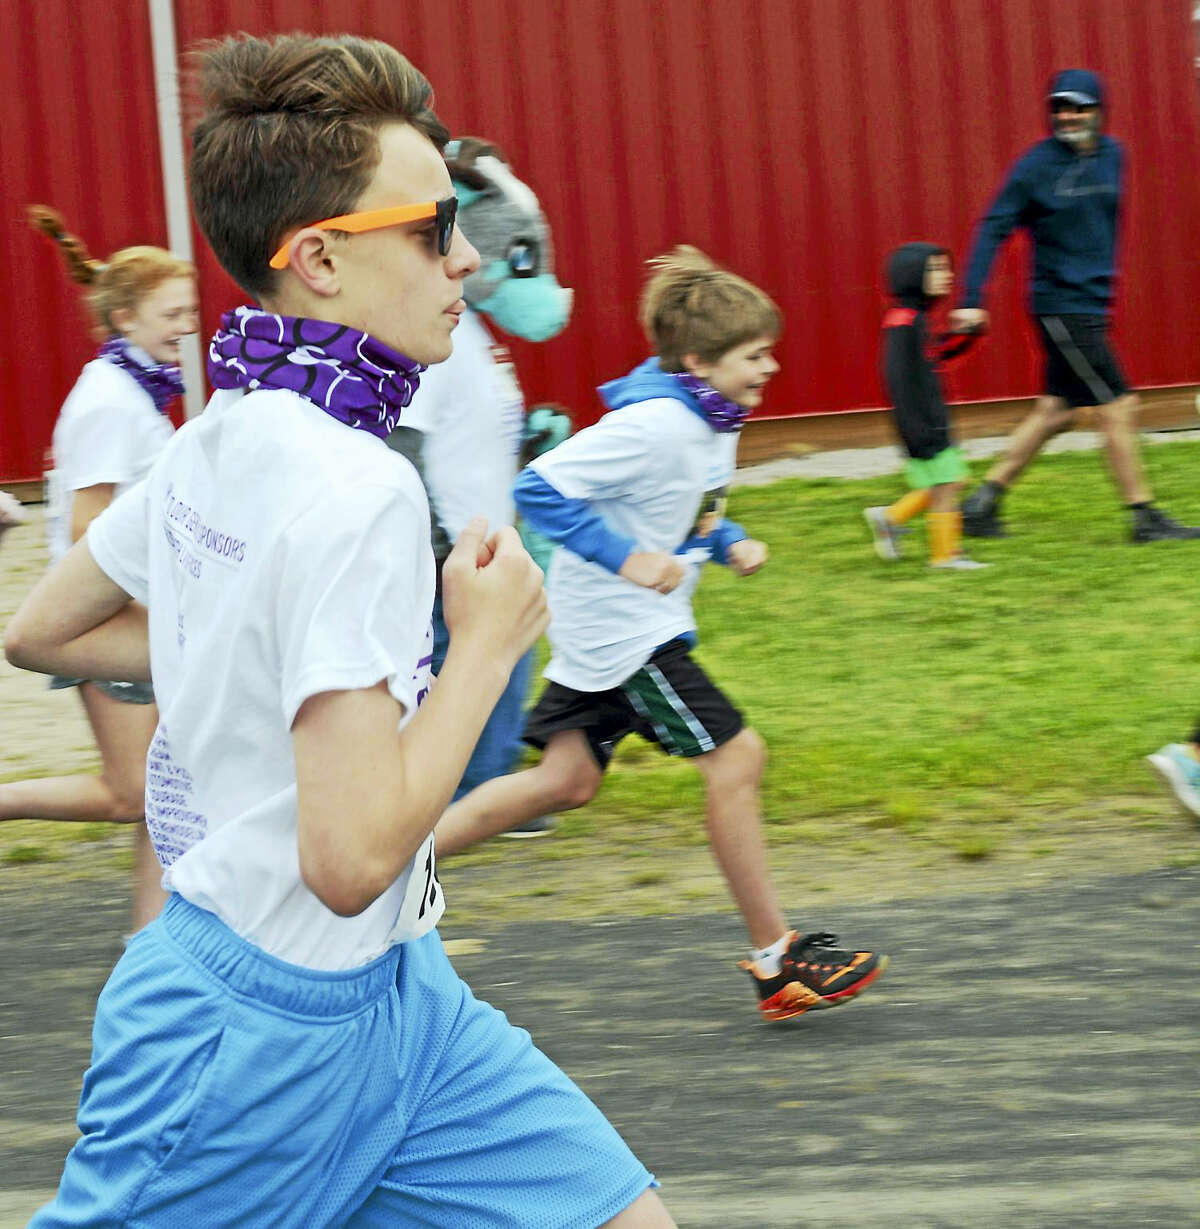 Photo by Jack TempletonOn your mark...runners go! Purple bandannas were worn by walkers and runners alike.